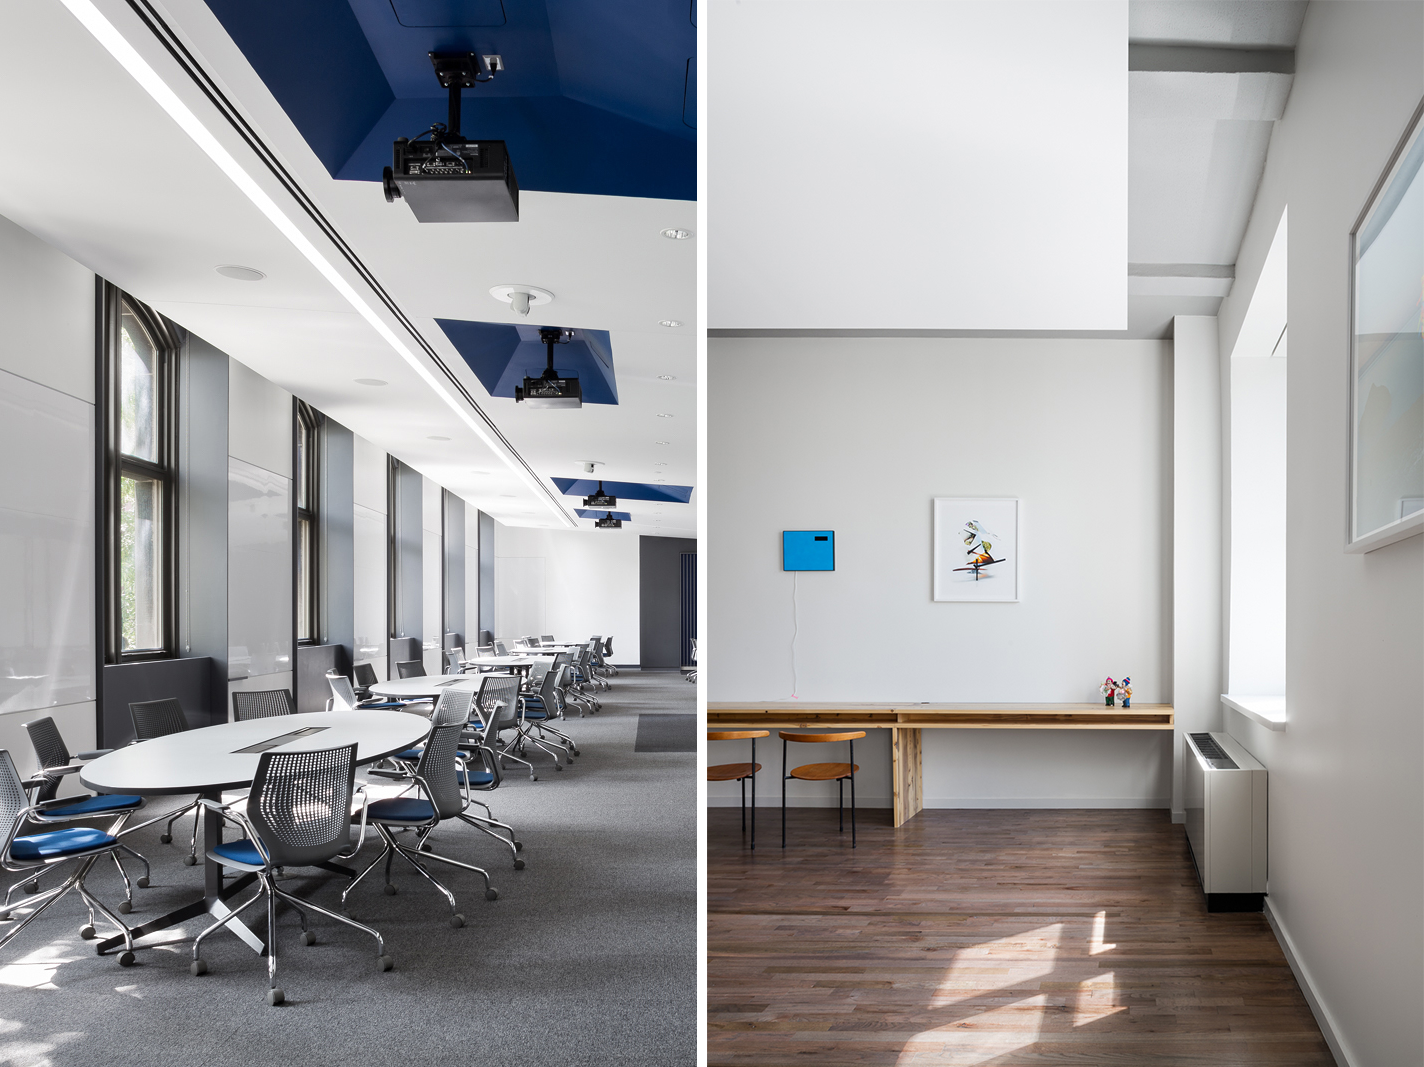 The  Forman Active Learning Classroom  and  Warehouse Loft  each received AIA awards at yesterday evening's Brooklyn / Queens Design Awards. See Studio Modh and the other winners at the  Brooklyn/Queens Design Awards website.